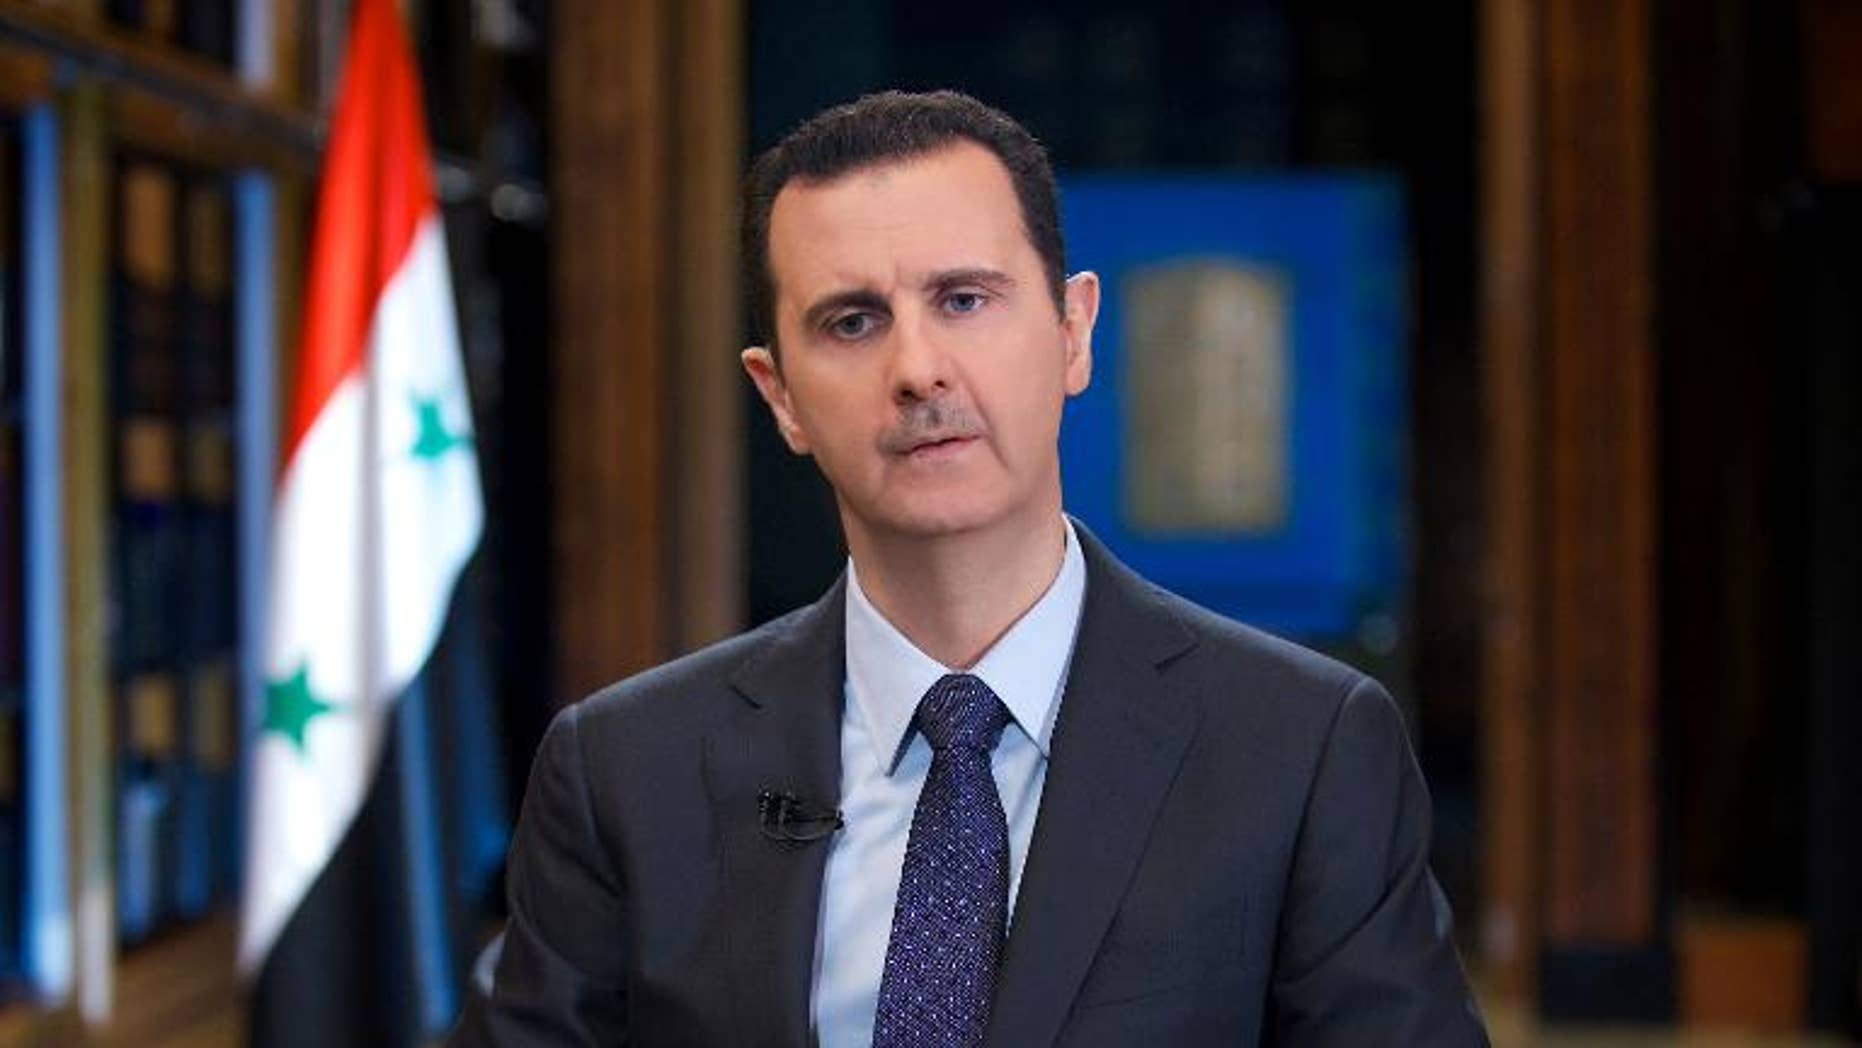 Syrian President Bashar al-Assad gives an interview with Venezuelan television station TeleSUR in Damascus, in a picture released by the official Syrian Arab News Agency on September 25, 2013